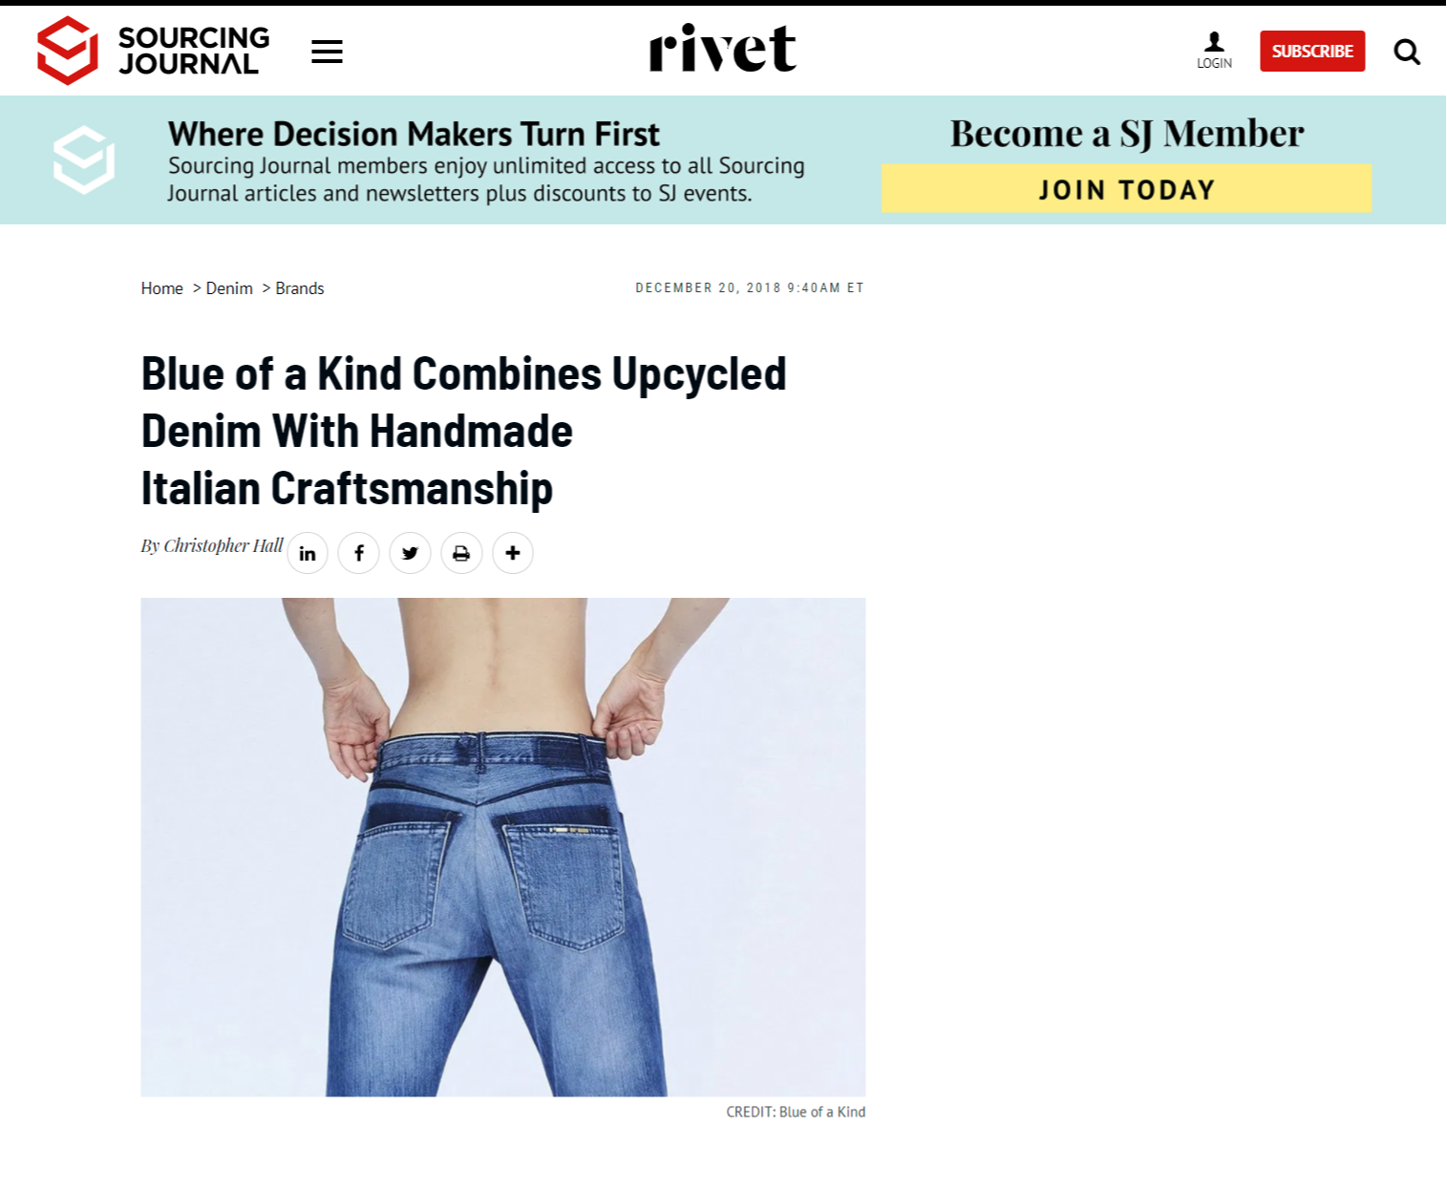 Sourcingjournal.com Rivet - Blue of a Kind Combines Upcycled Denim With Handmade Italian Craftsmanship